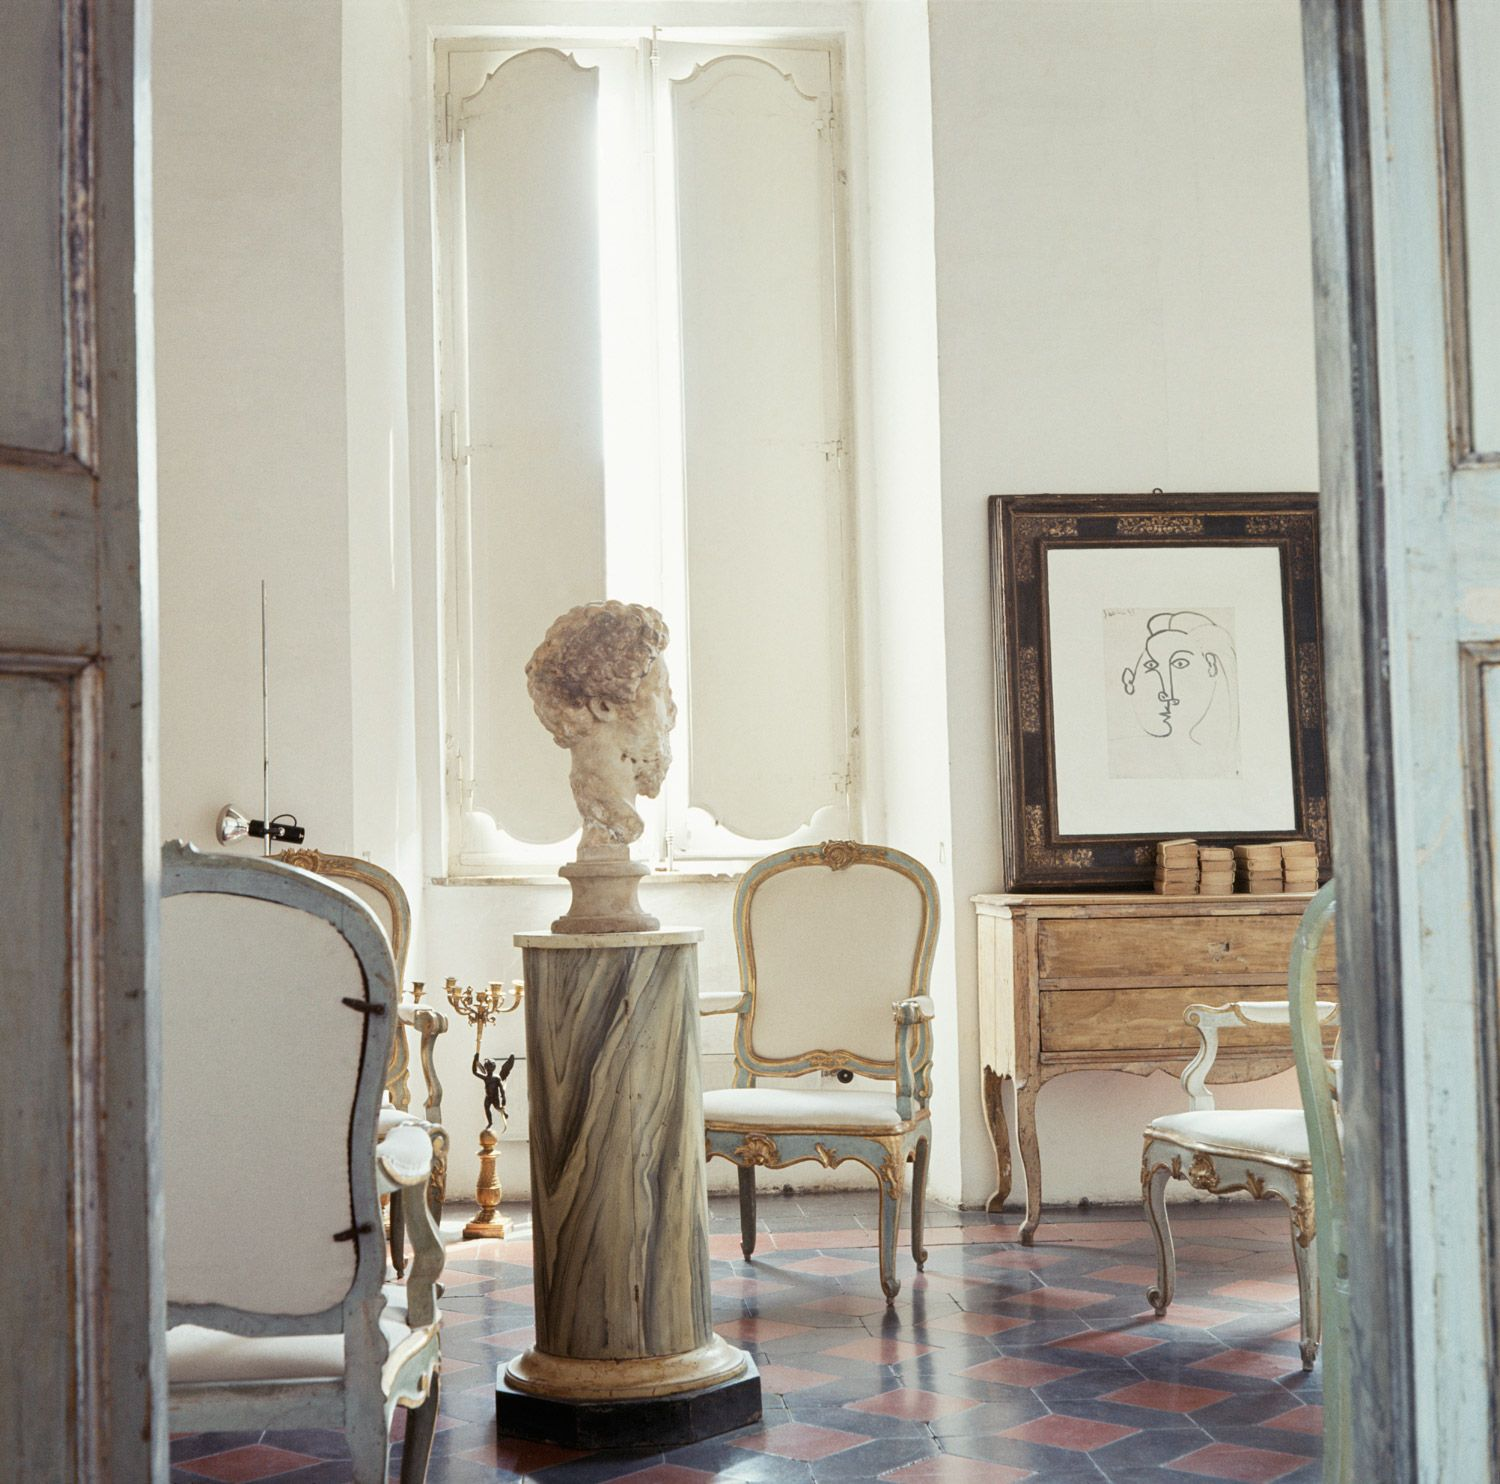 Cy Twombly's Italian home: In the drawing room, Picasso's Head Of A Woman (1943) faces down a bust of Marcus Aurelius.